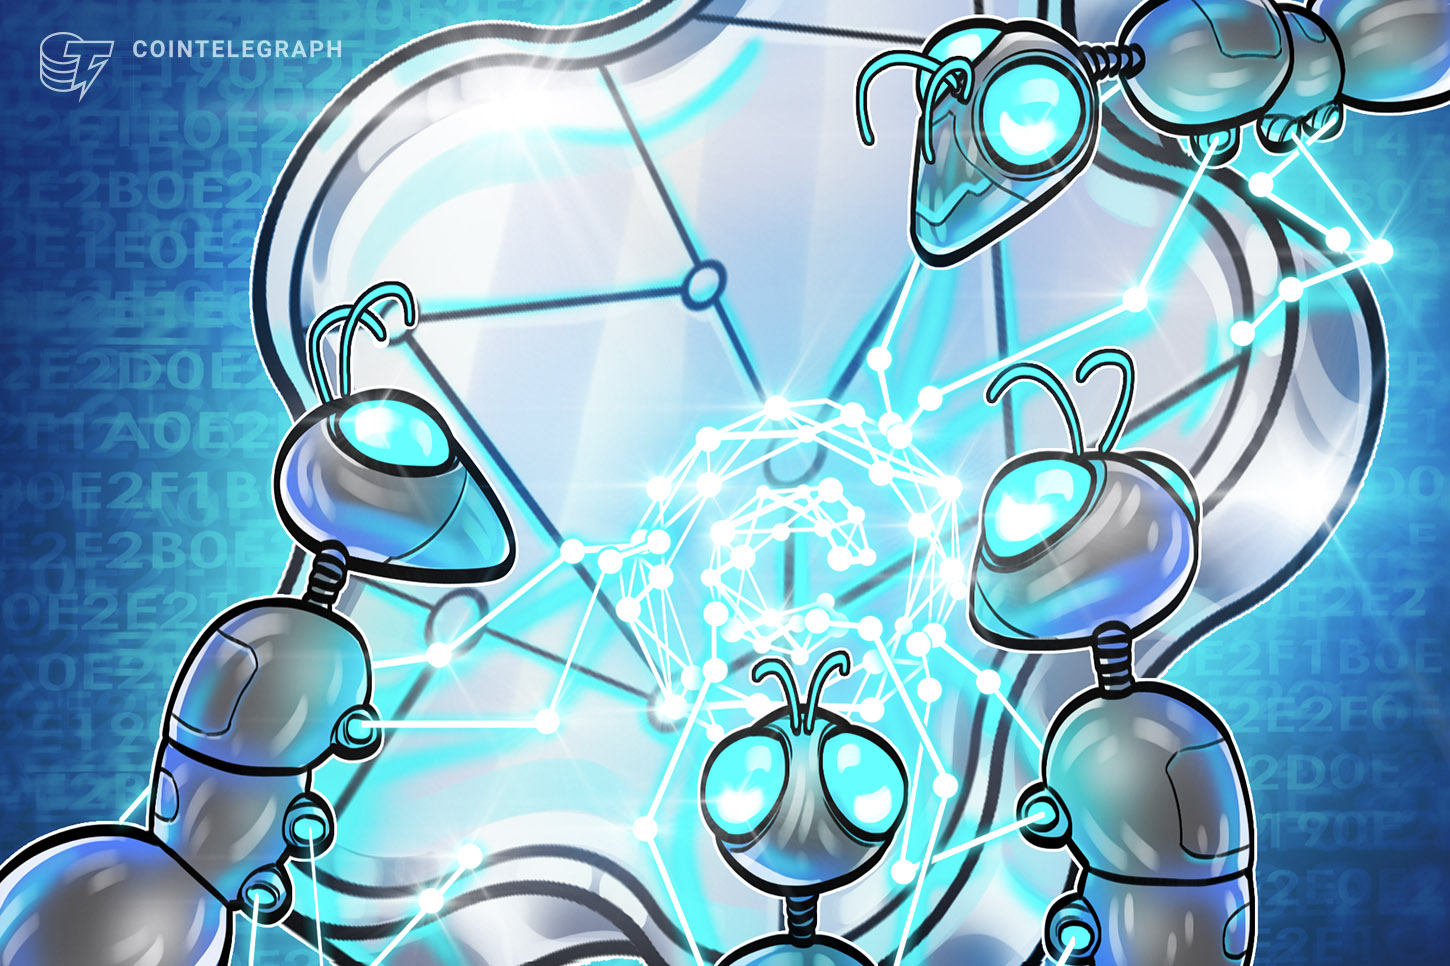 Cointelegraph Consulting: Rarible's daily transactions see a rapid decline